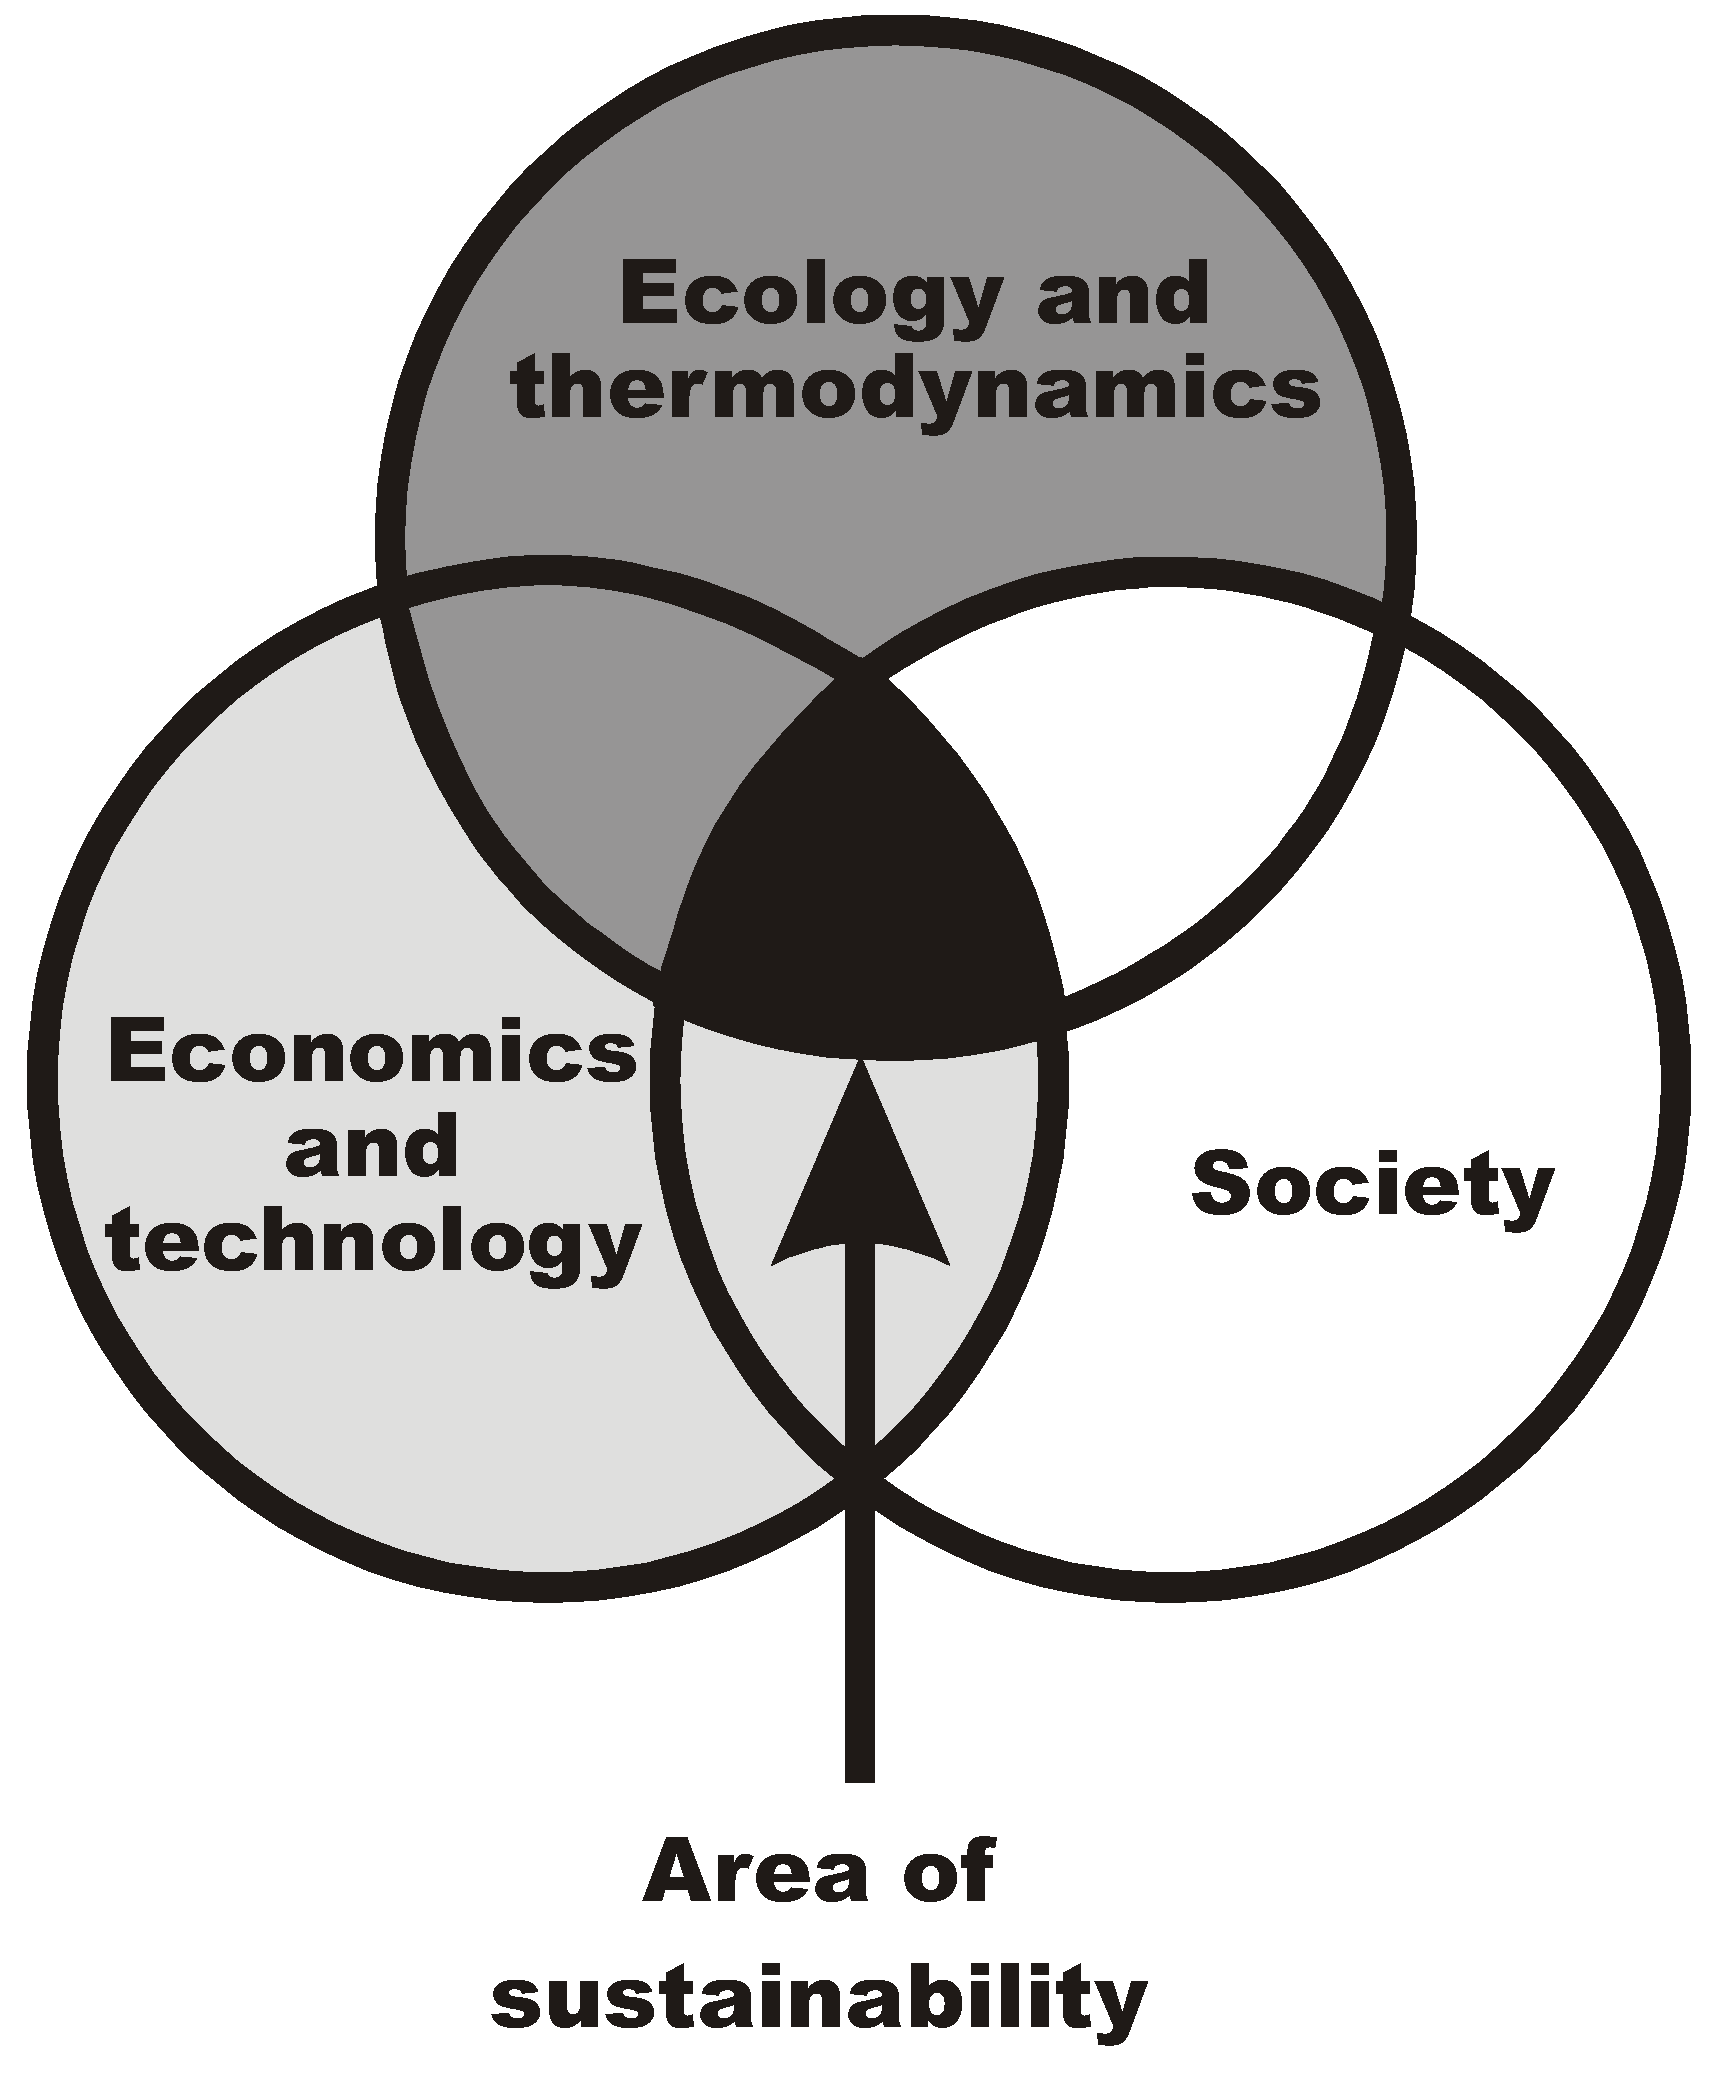 ecological economics and the ecology of economics essays in criticism 9781858989686 ecological economics and the ecology of economics: essays in criticism,books, textbooks, text book.